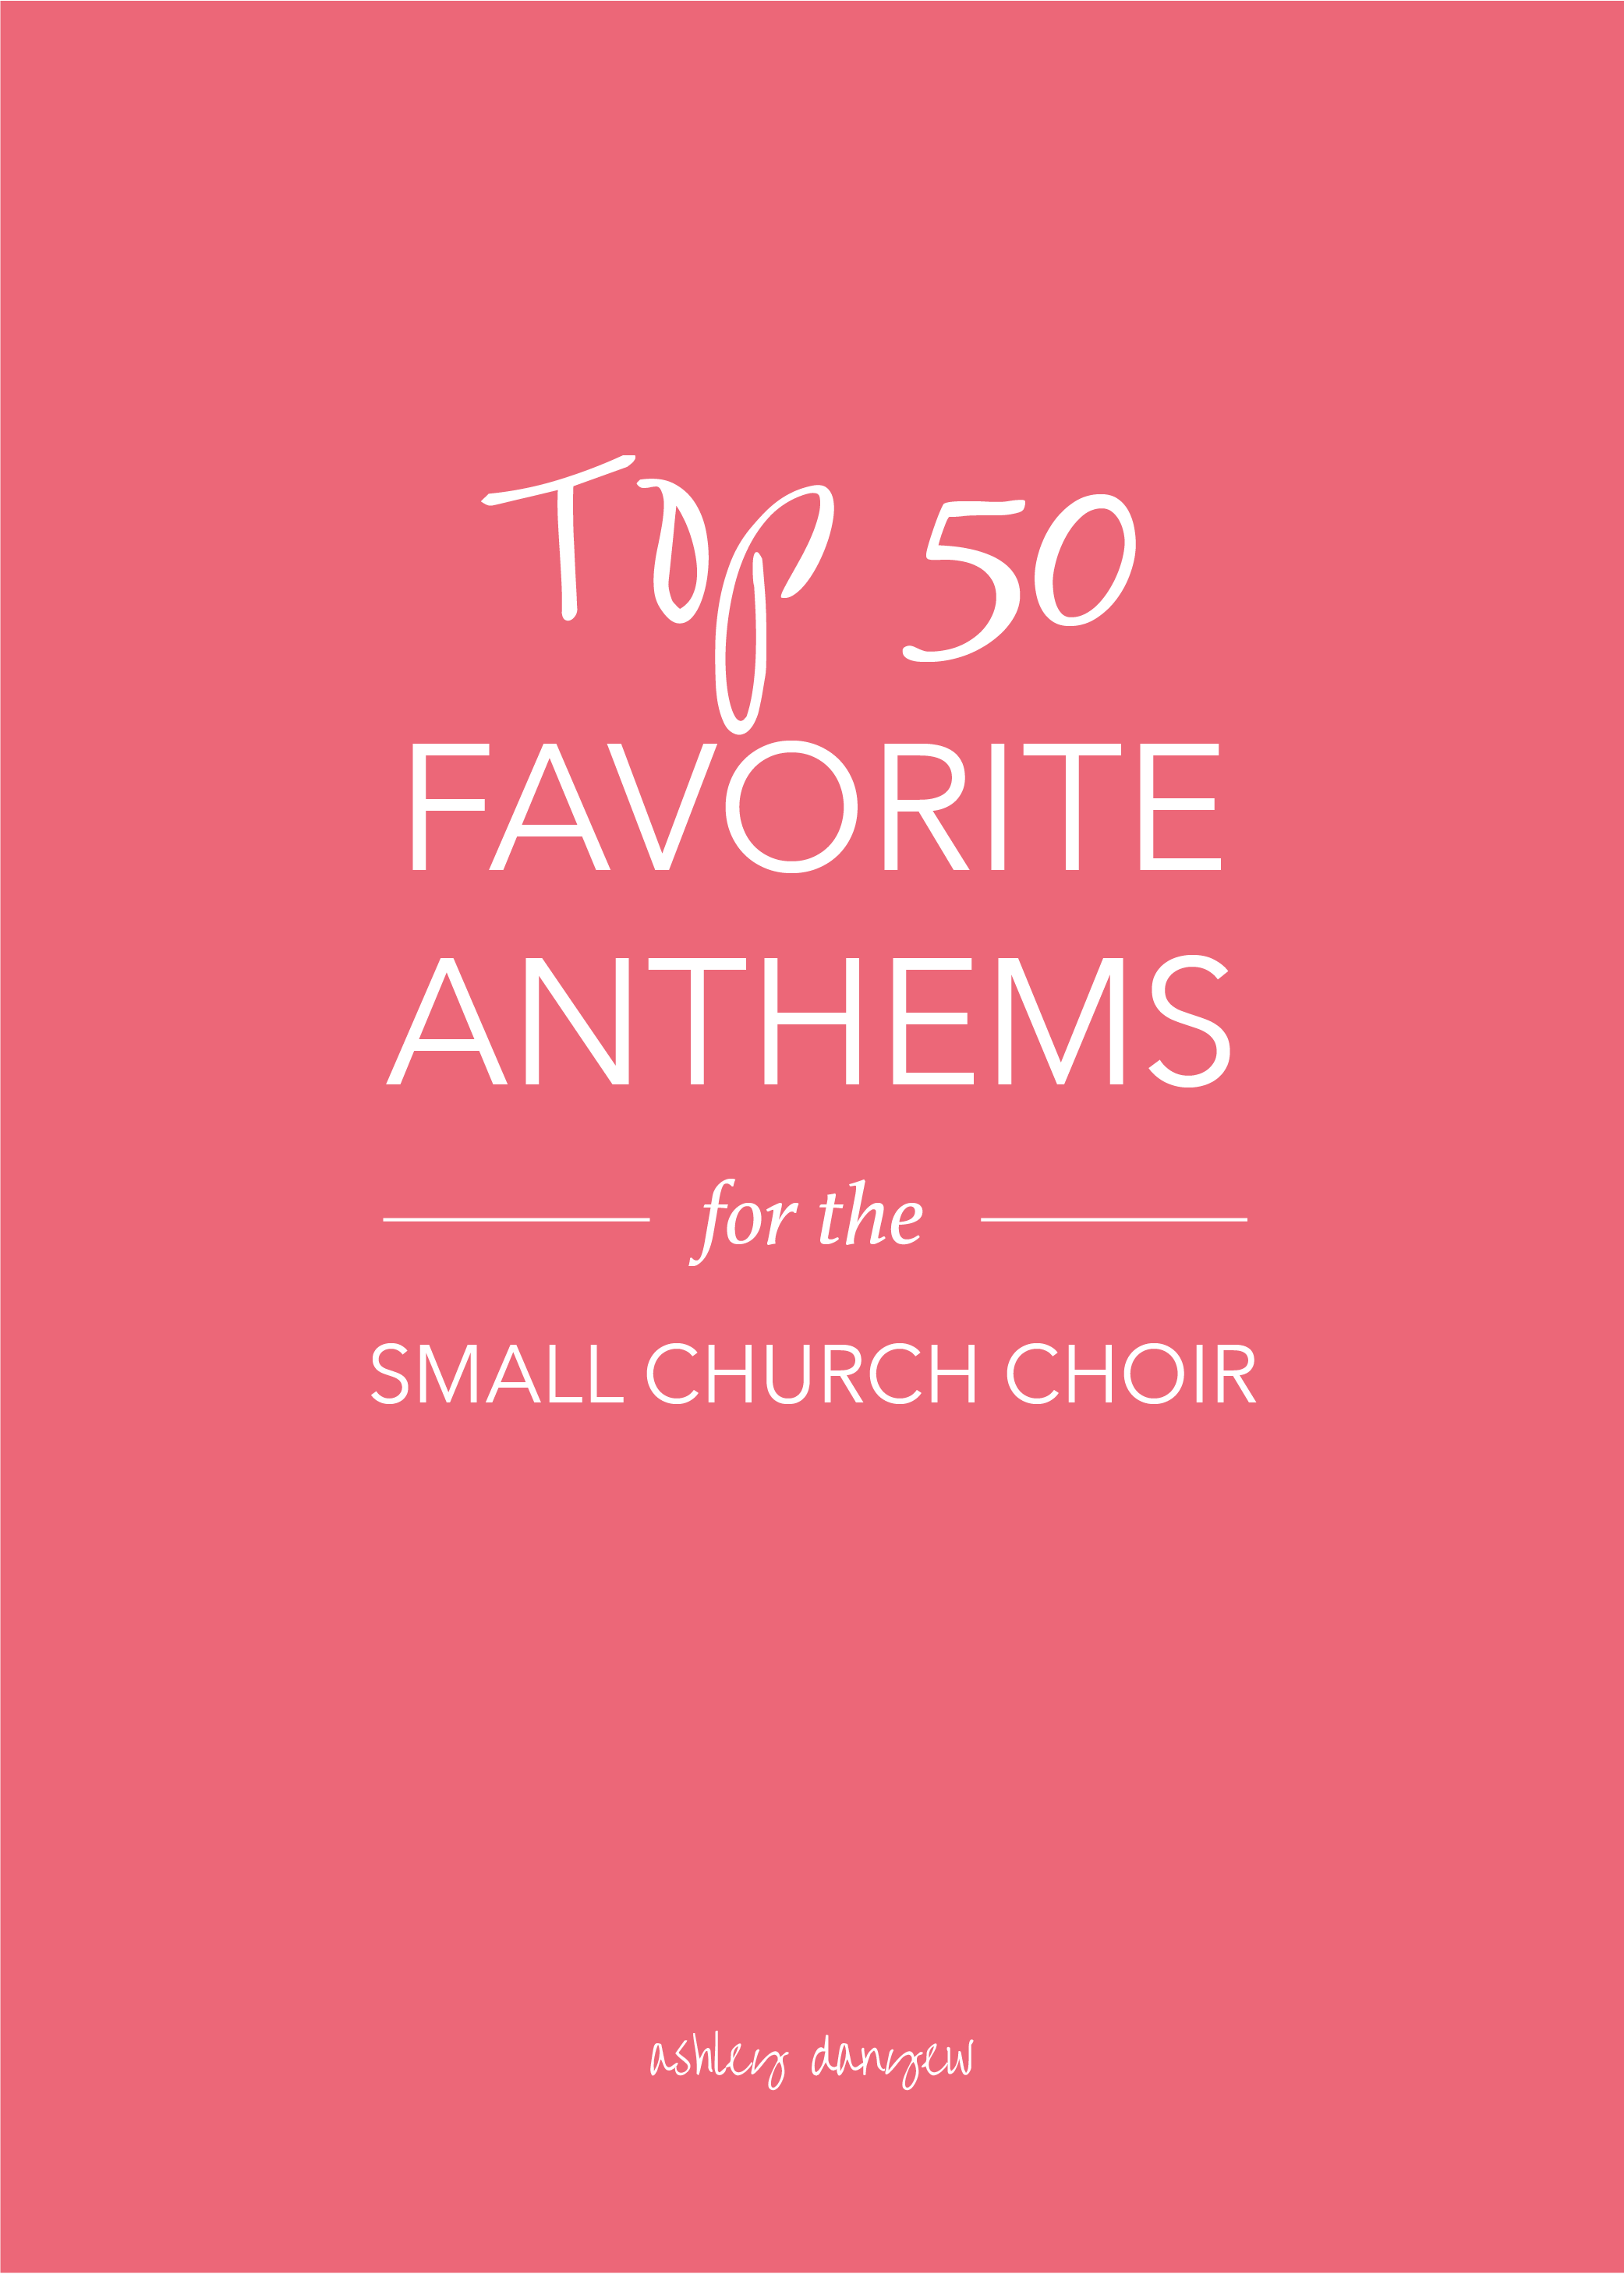 50-Favorite-Anthems-for-the-Small-Church-Choir-01.png